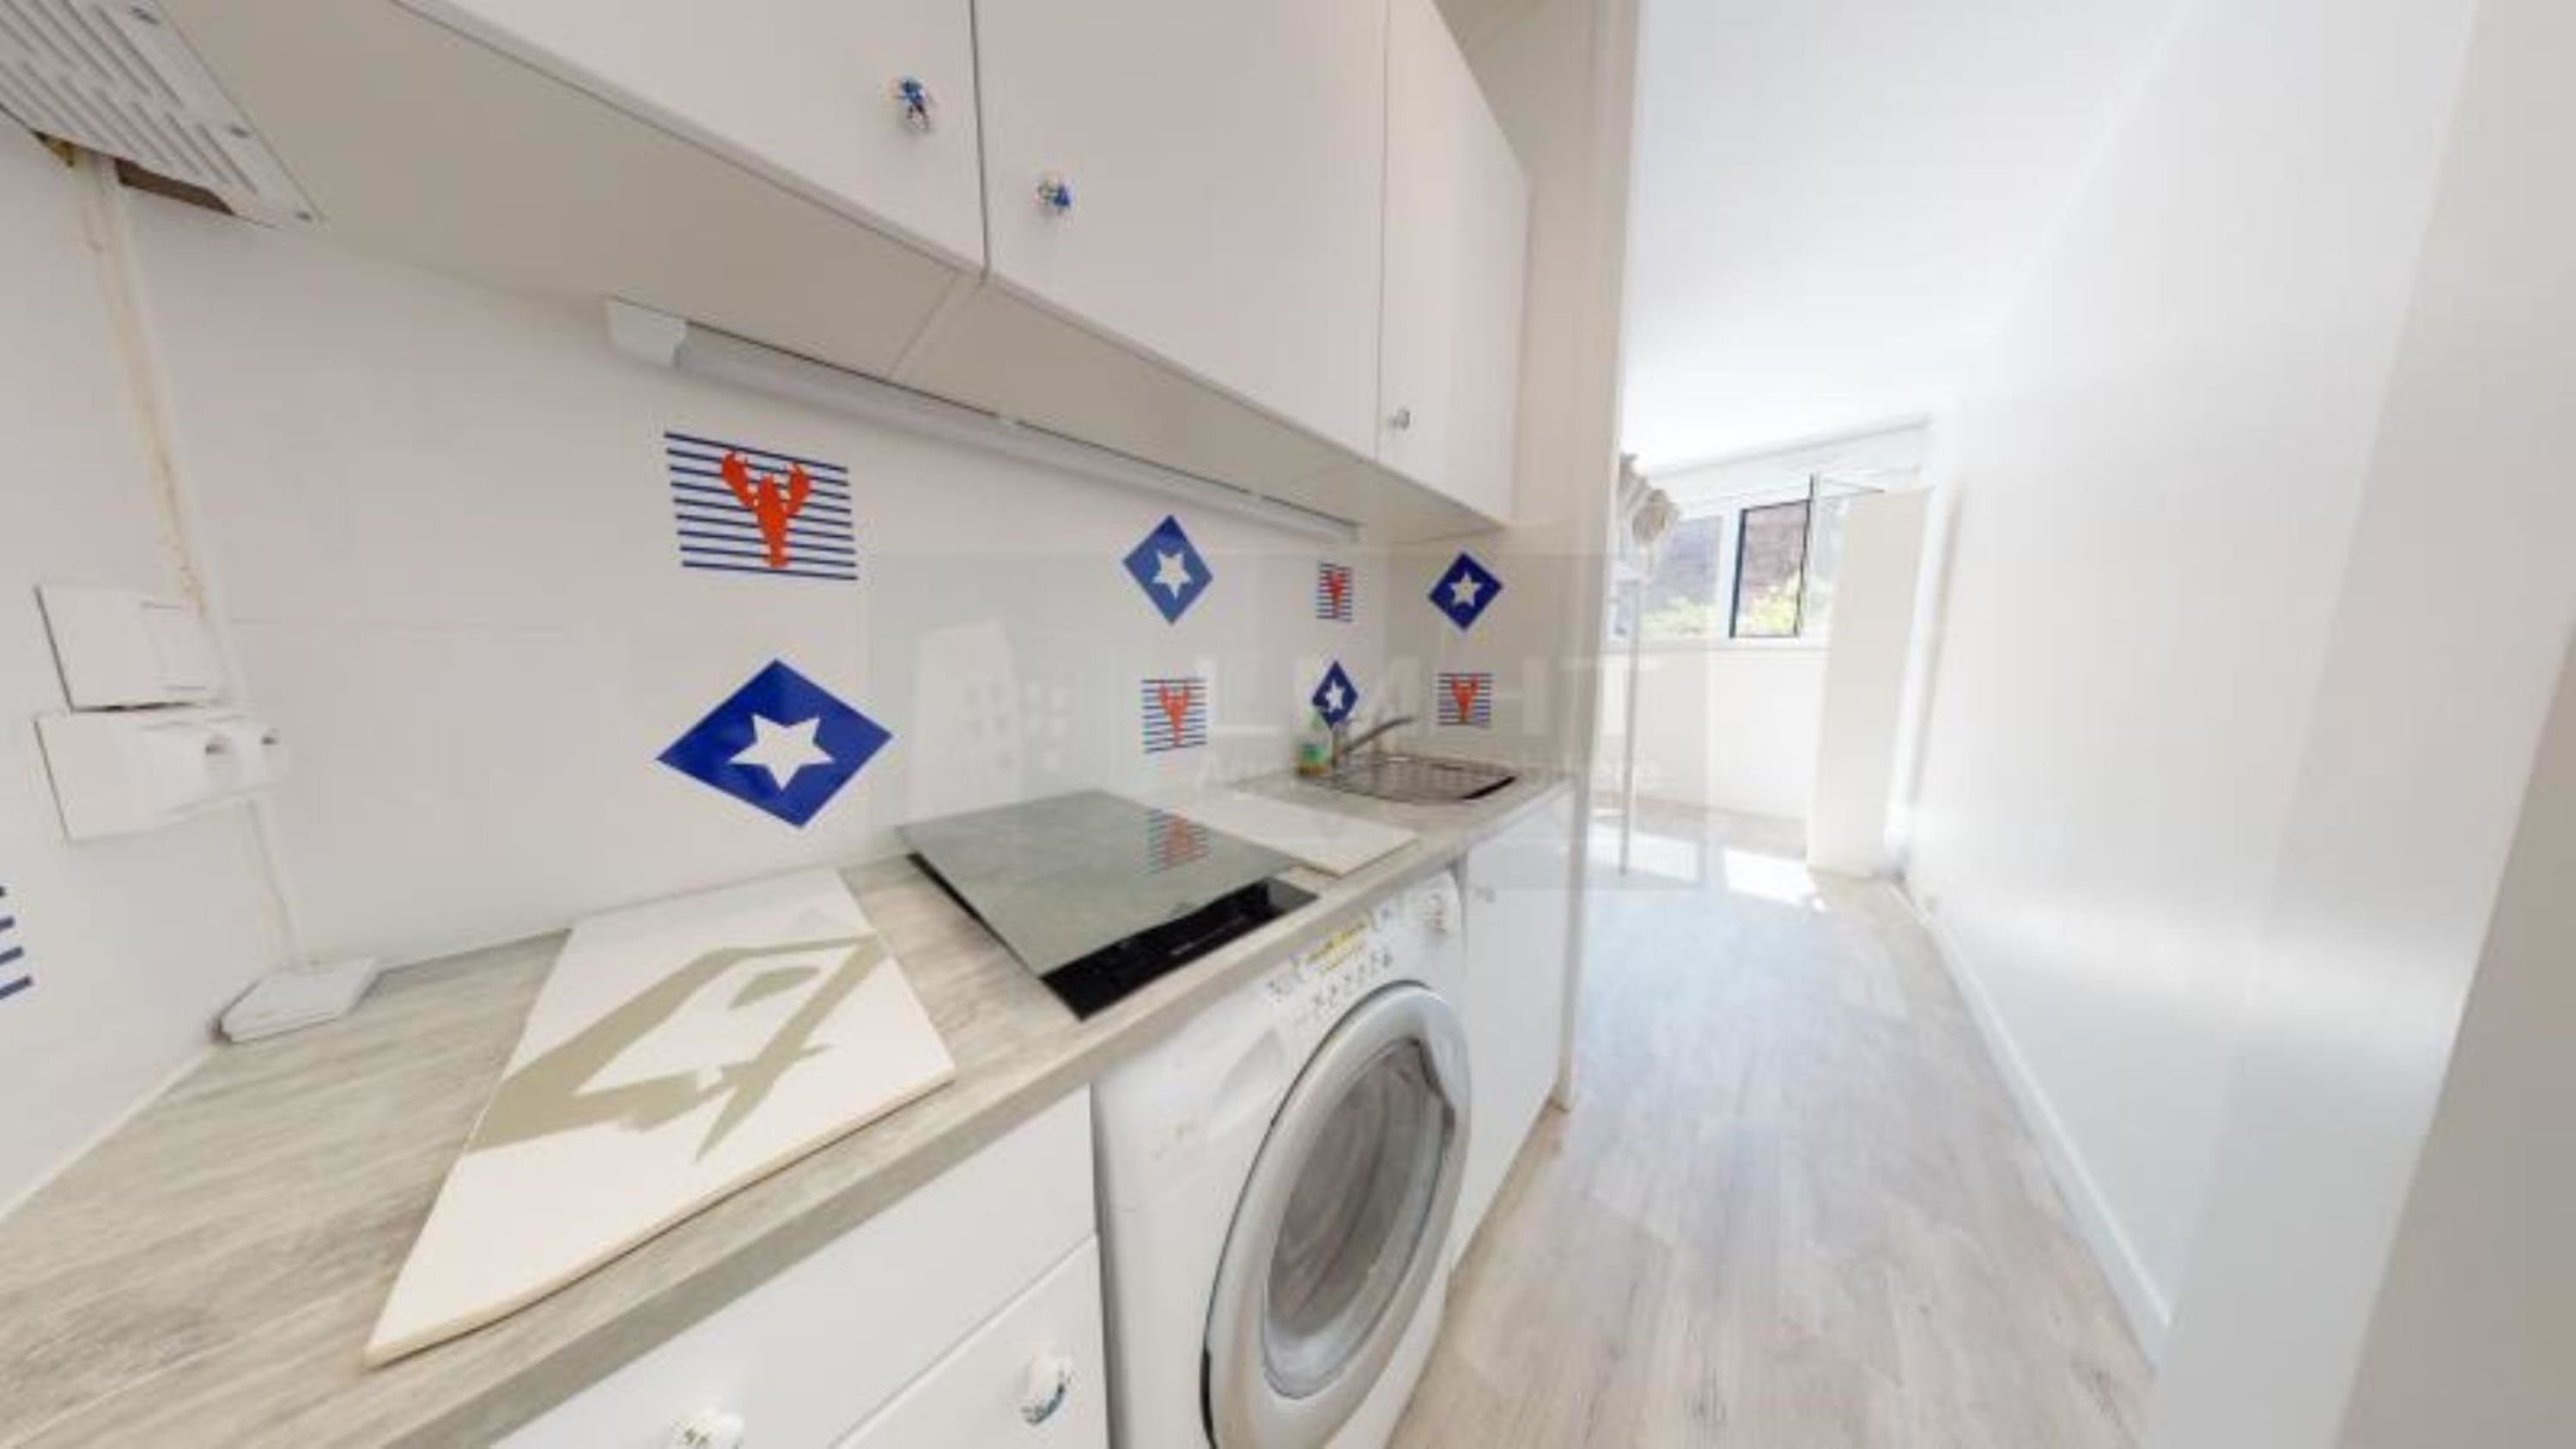 agence immobilière sevres 92 le chesnay 78 achat vente location appartement maison immobilier LMHT ANF OOTJYUAU